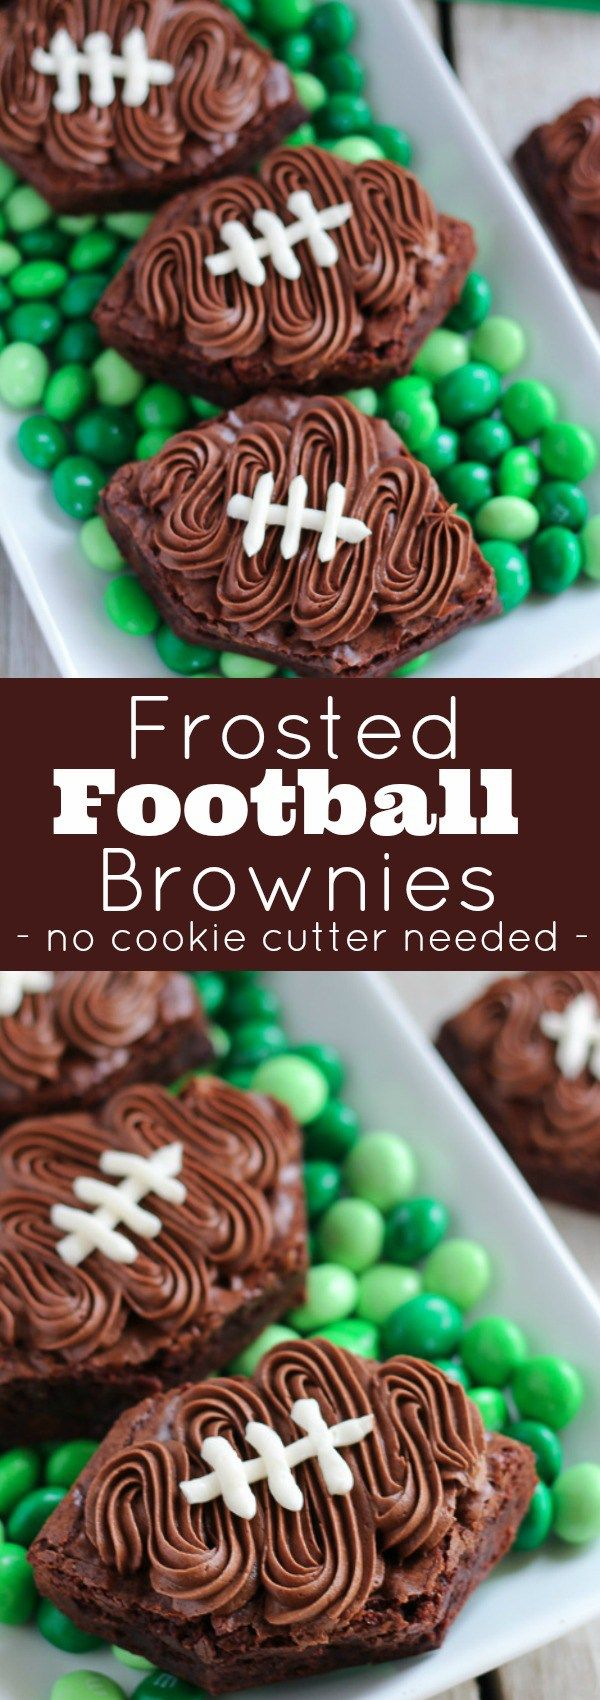 Frosted Football Brownies - The perfect Super Bowl dessert! No cookie cutter needed.